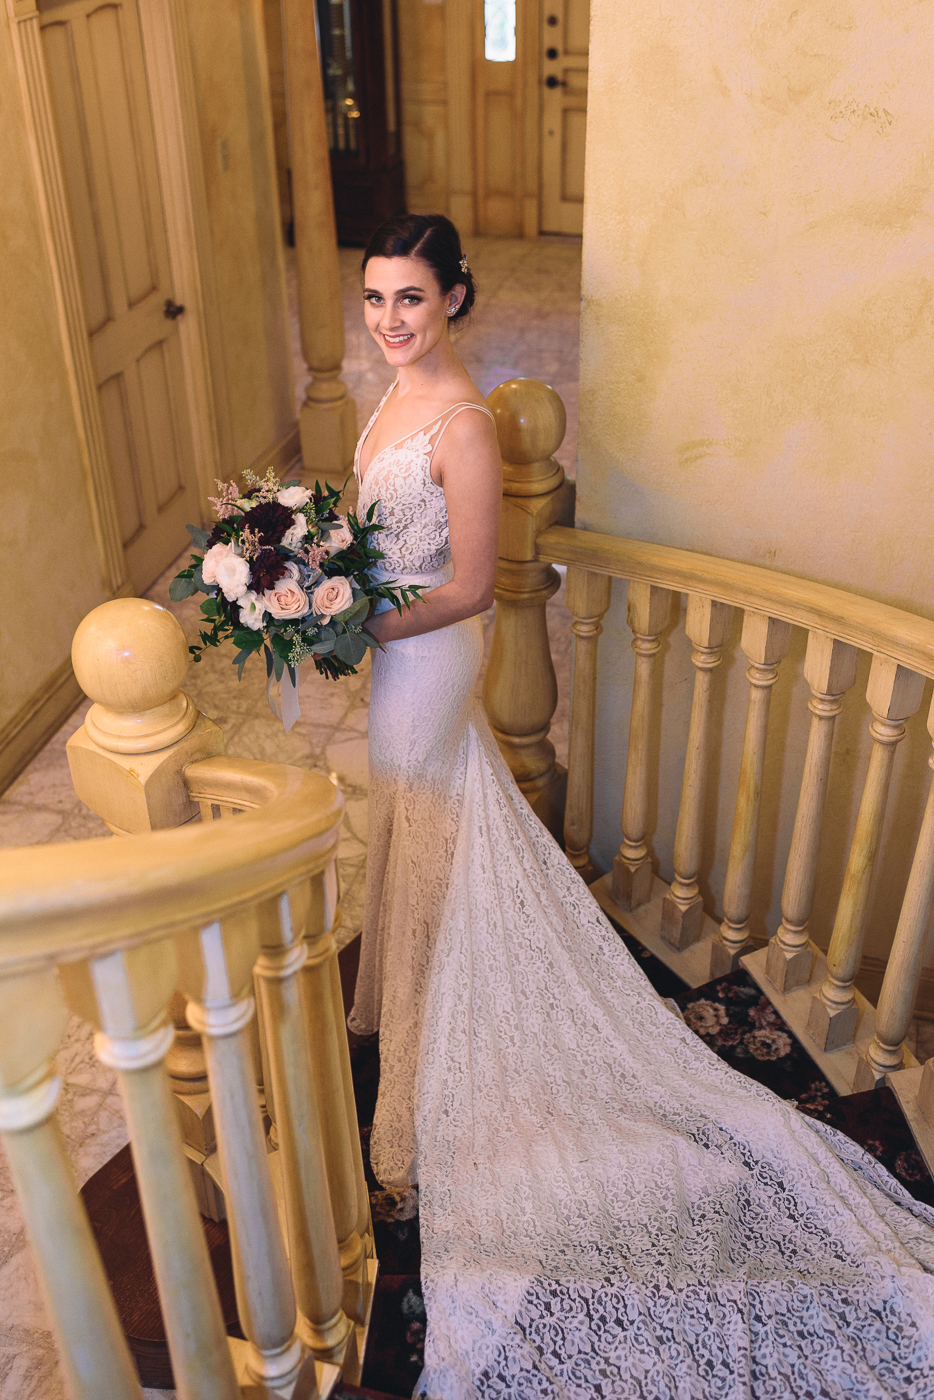 beautiful bride wedding gown bouquet lace train